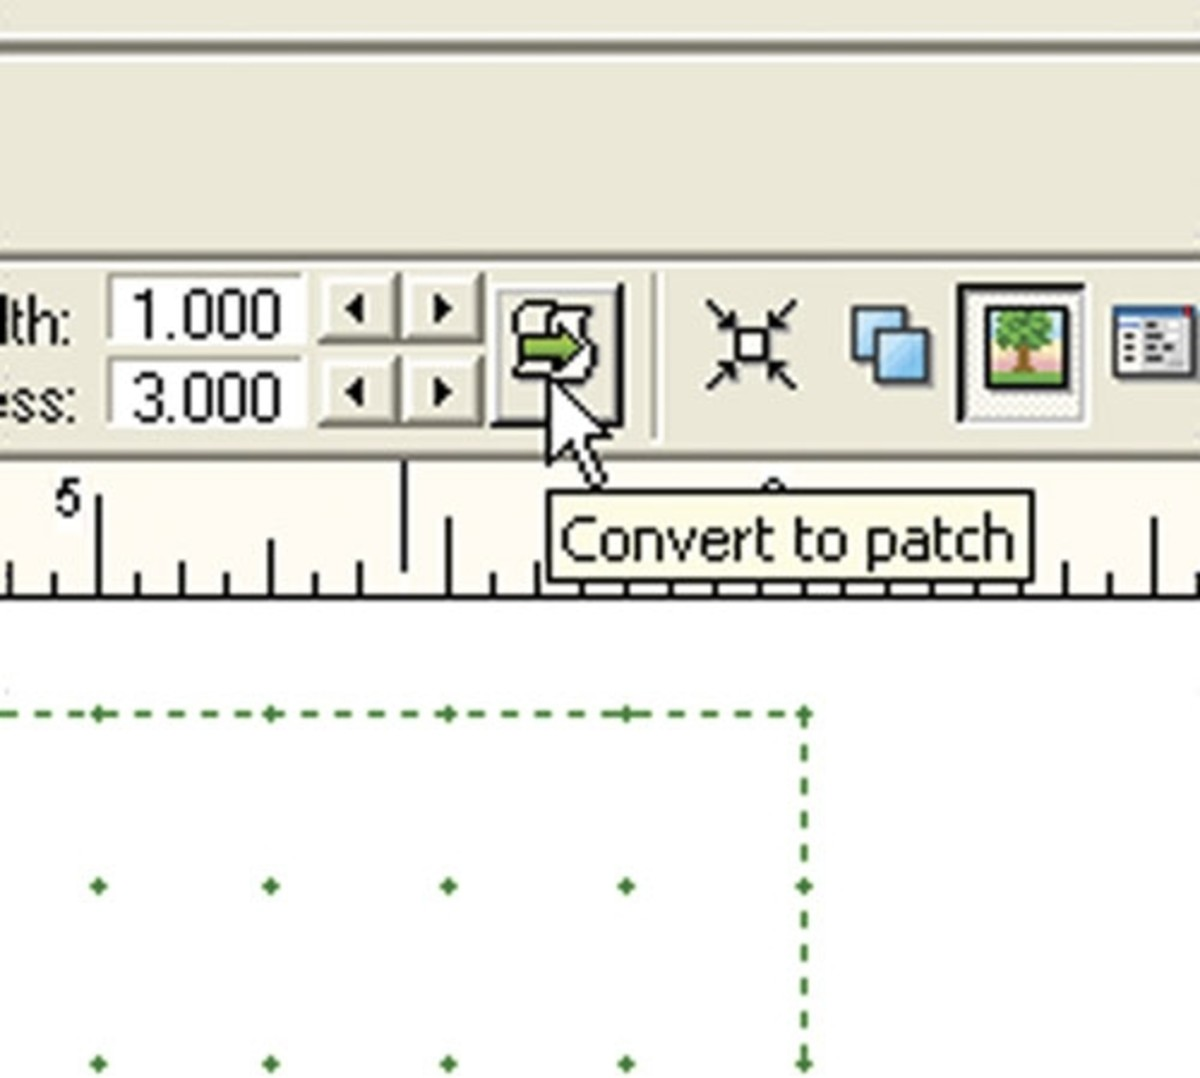 Convert strokes to patches